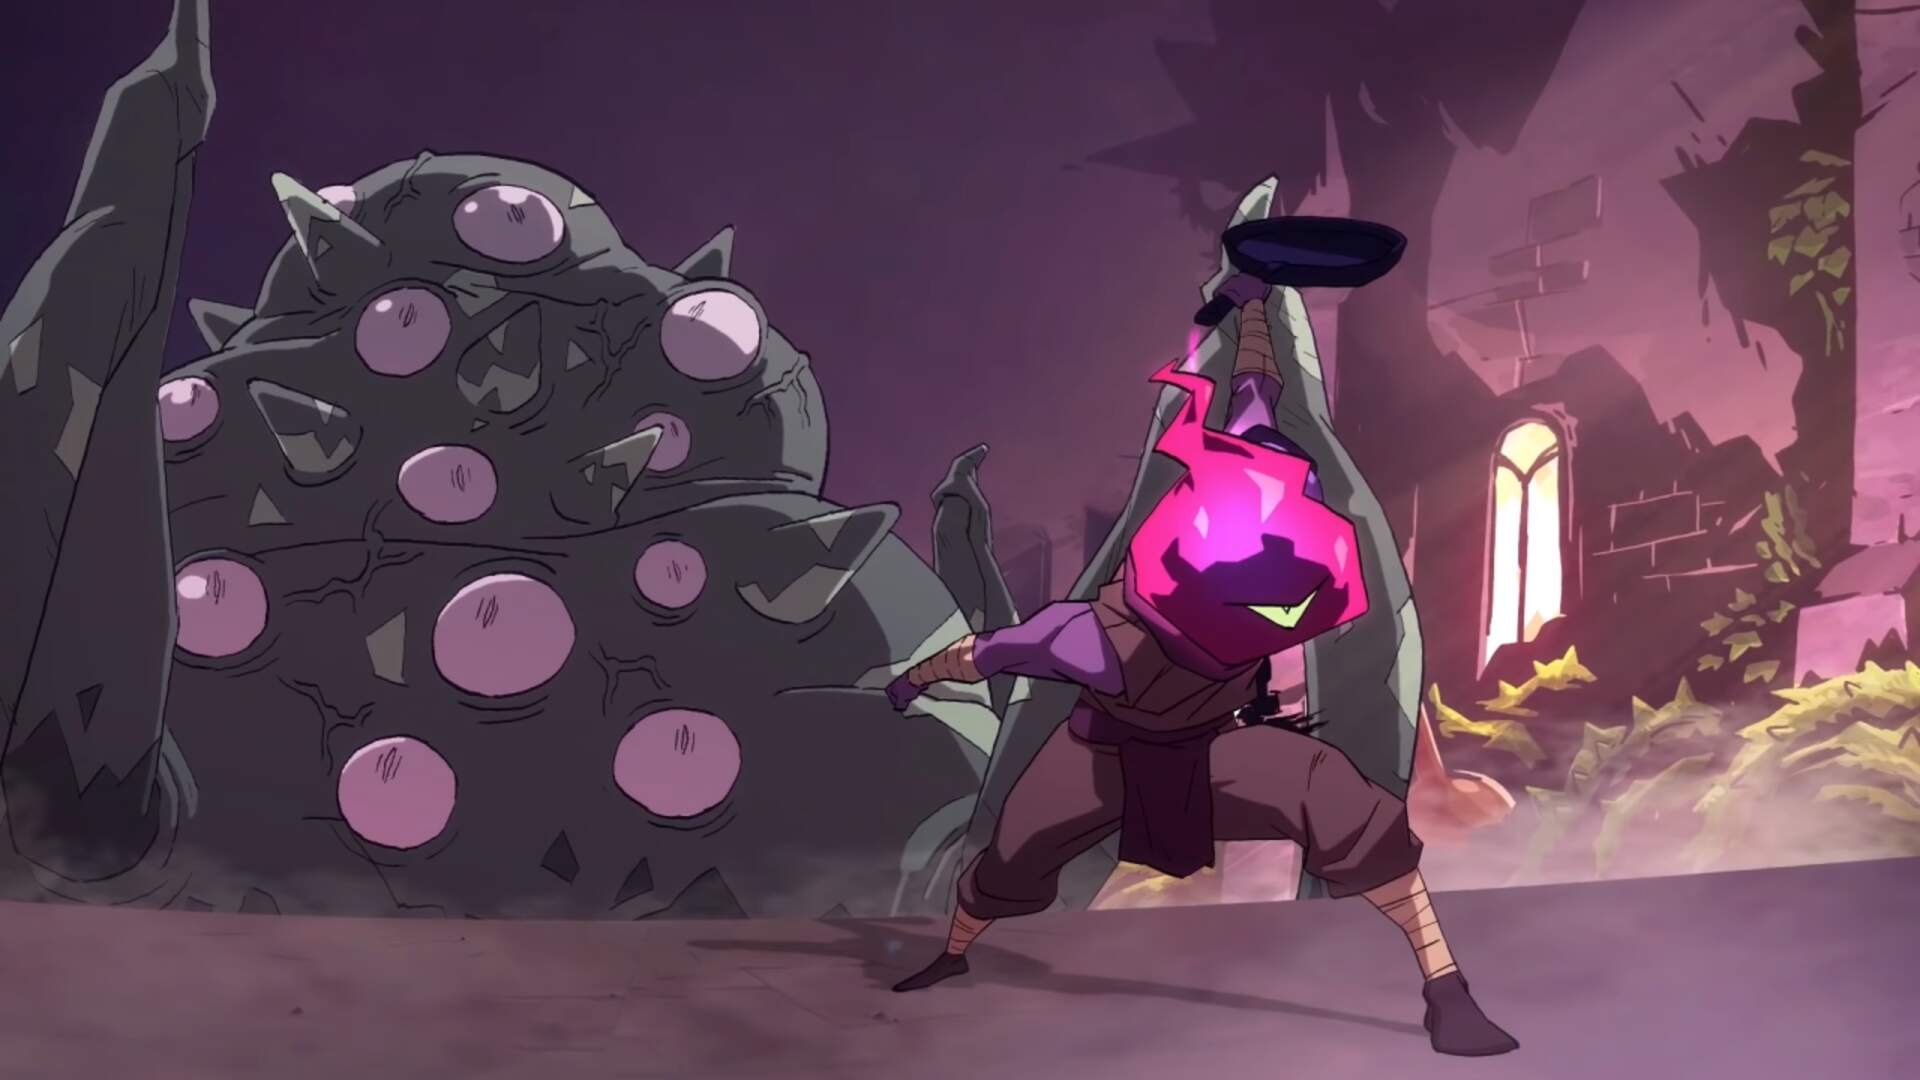 Dead Cells Gets a Sick Animated Trailer for Today's Bad Seed DLC